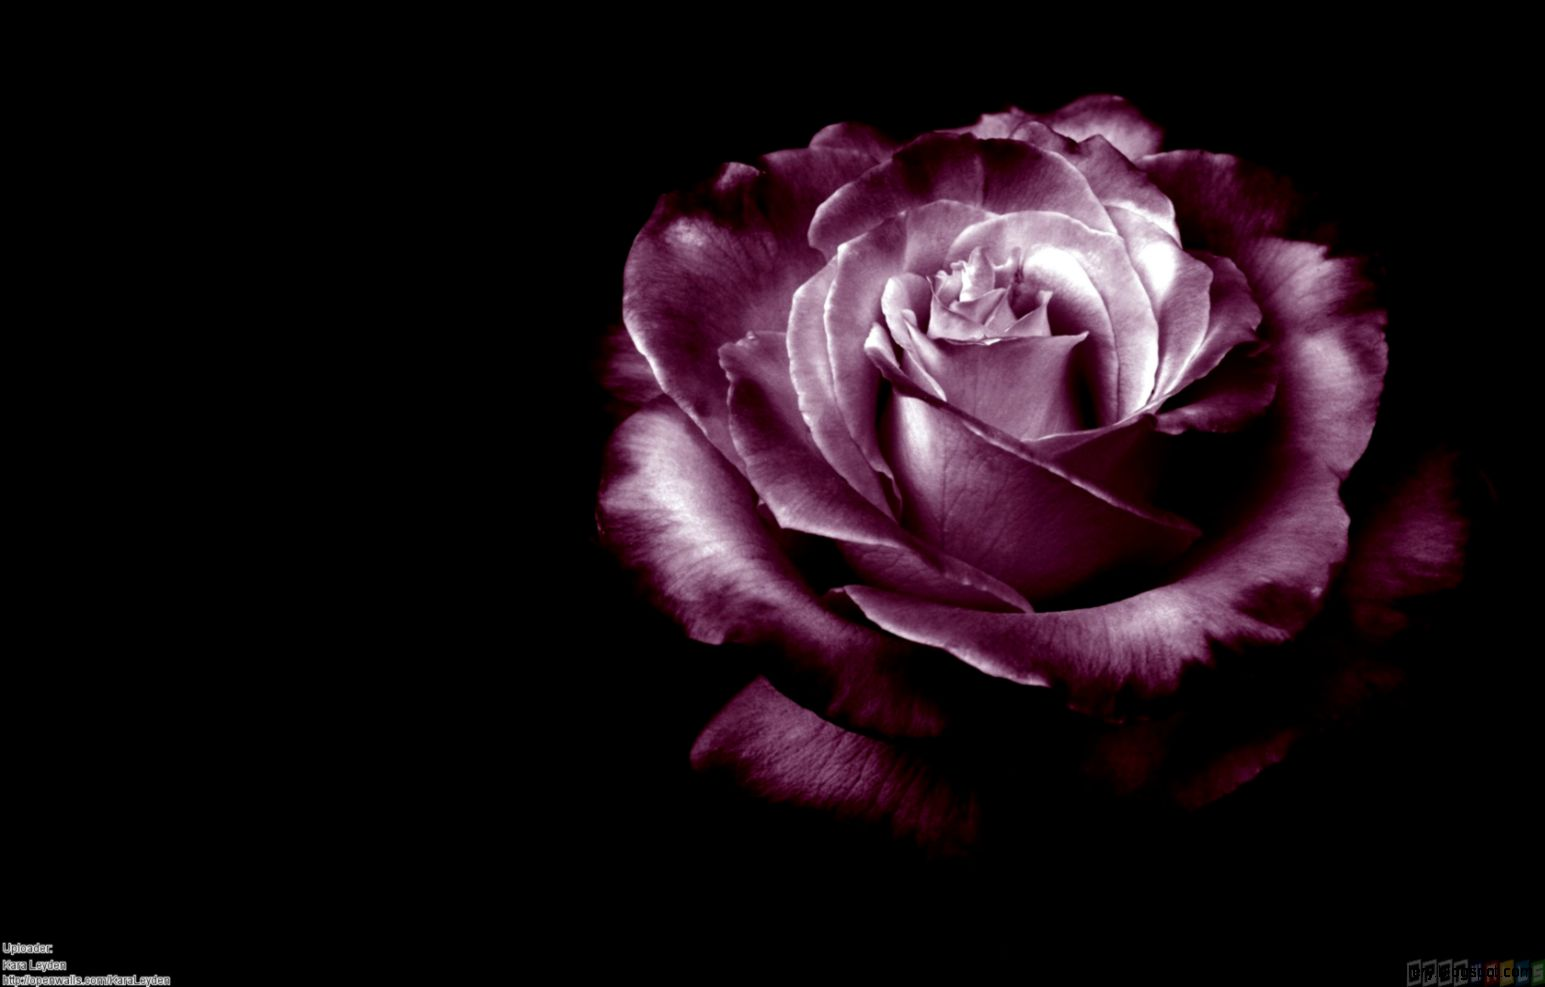 Rose Black Background   WallpaperSafari